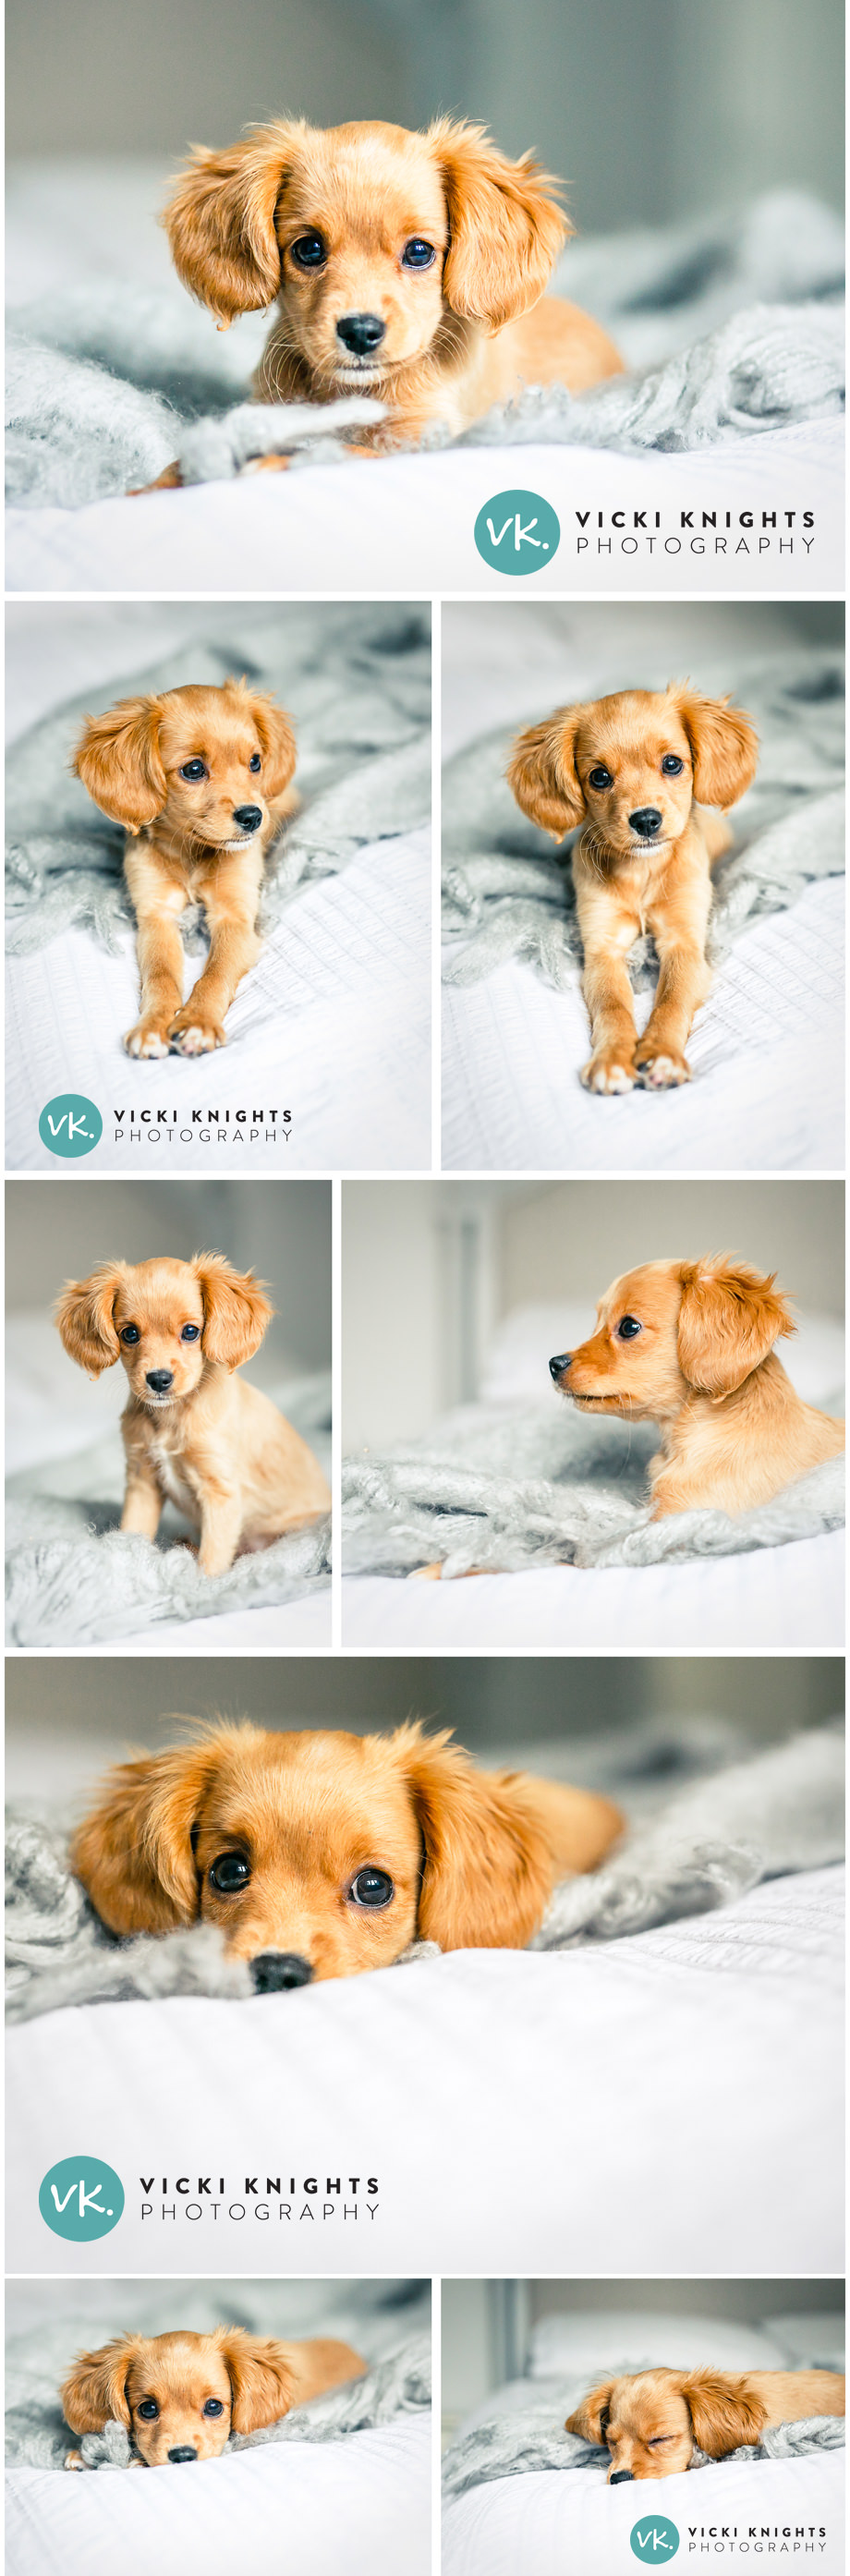 cavapoo-puppy-photography-vicki-knights